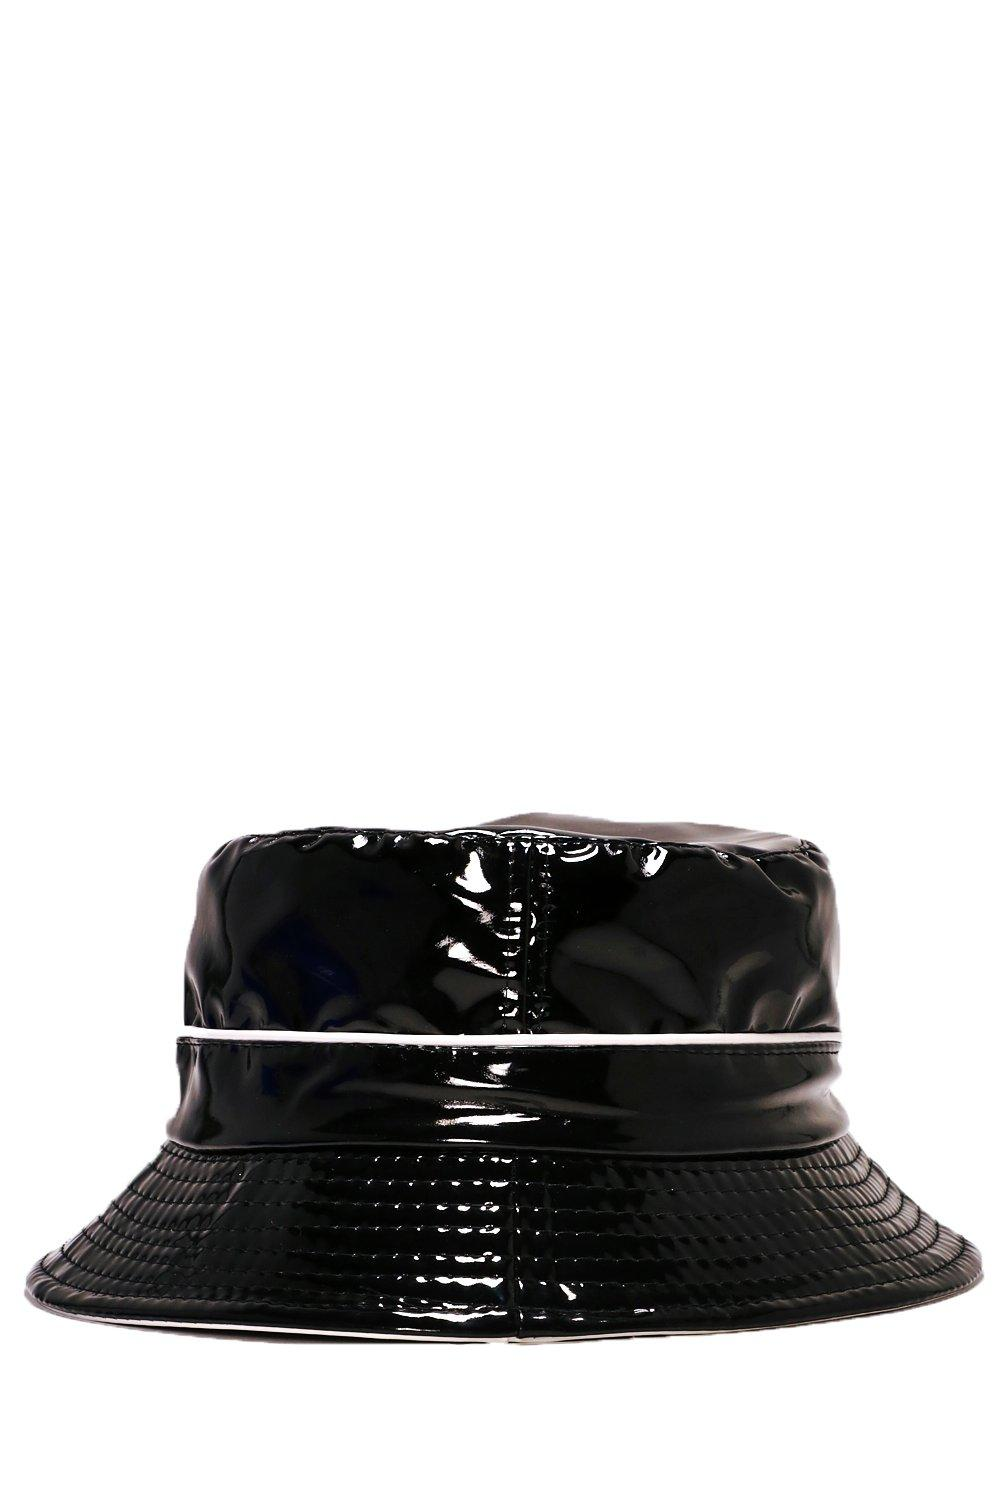 447353be You Make Me Slick Patent Bucket Hat | Shop Clothes at Nasty Gal!